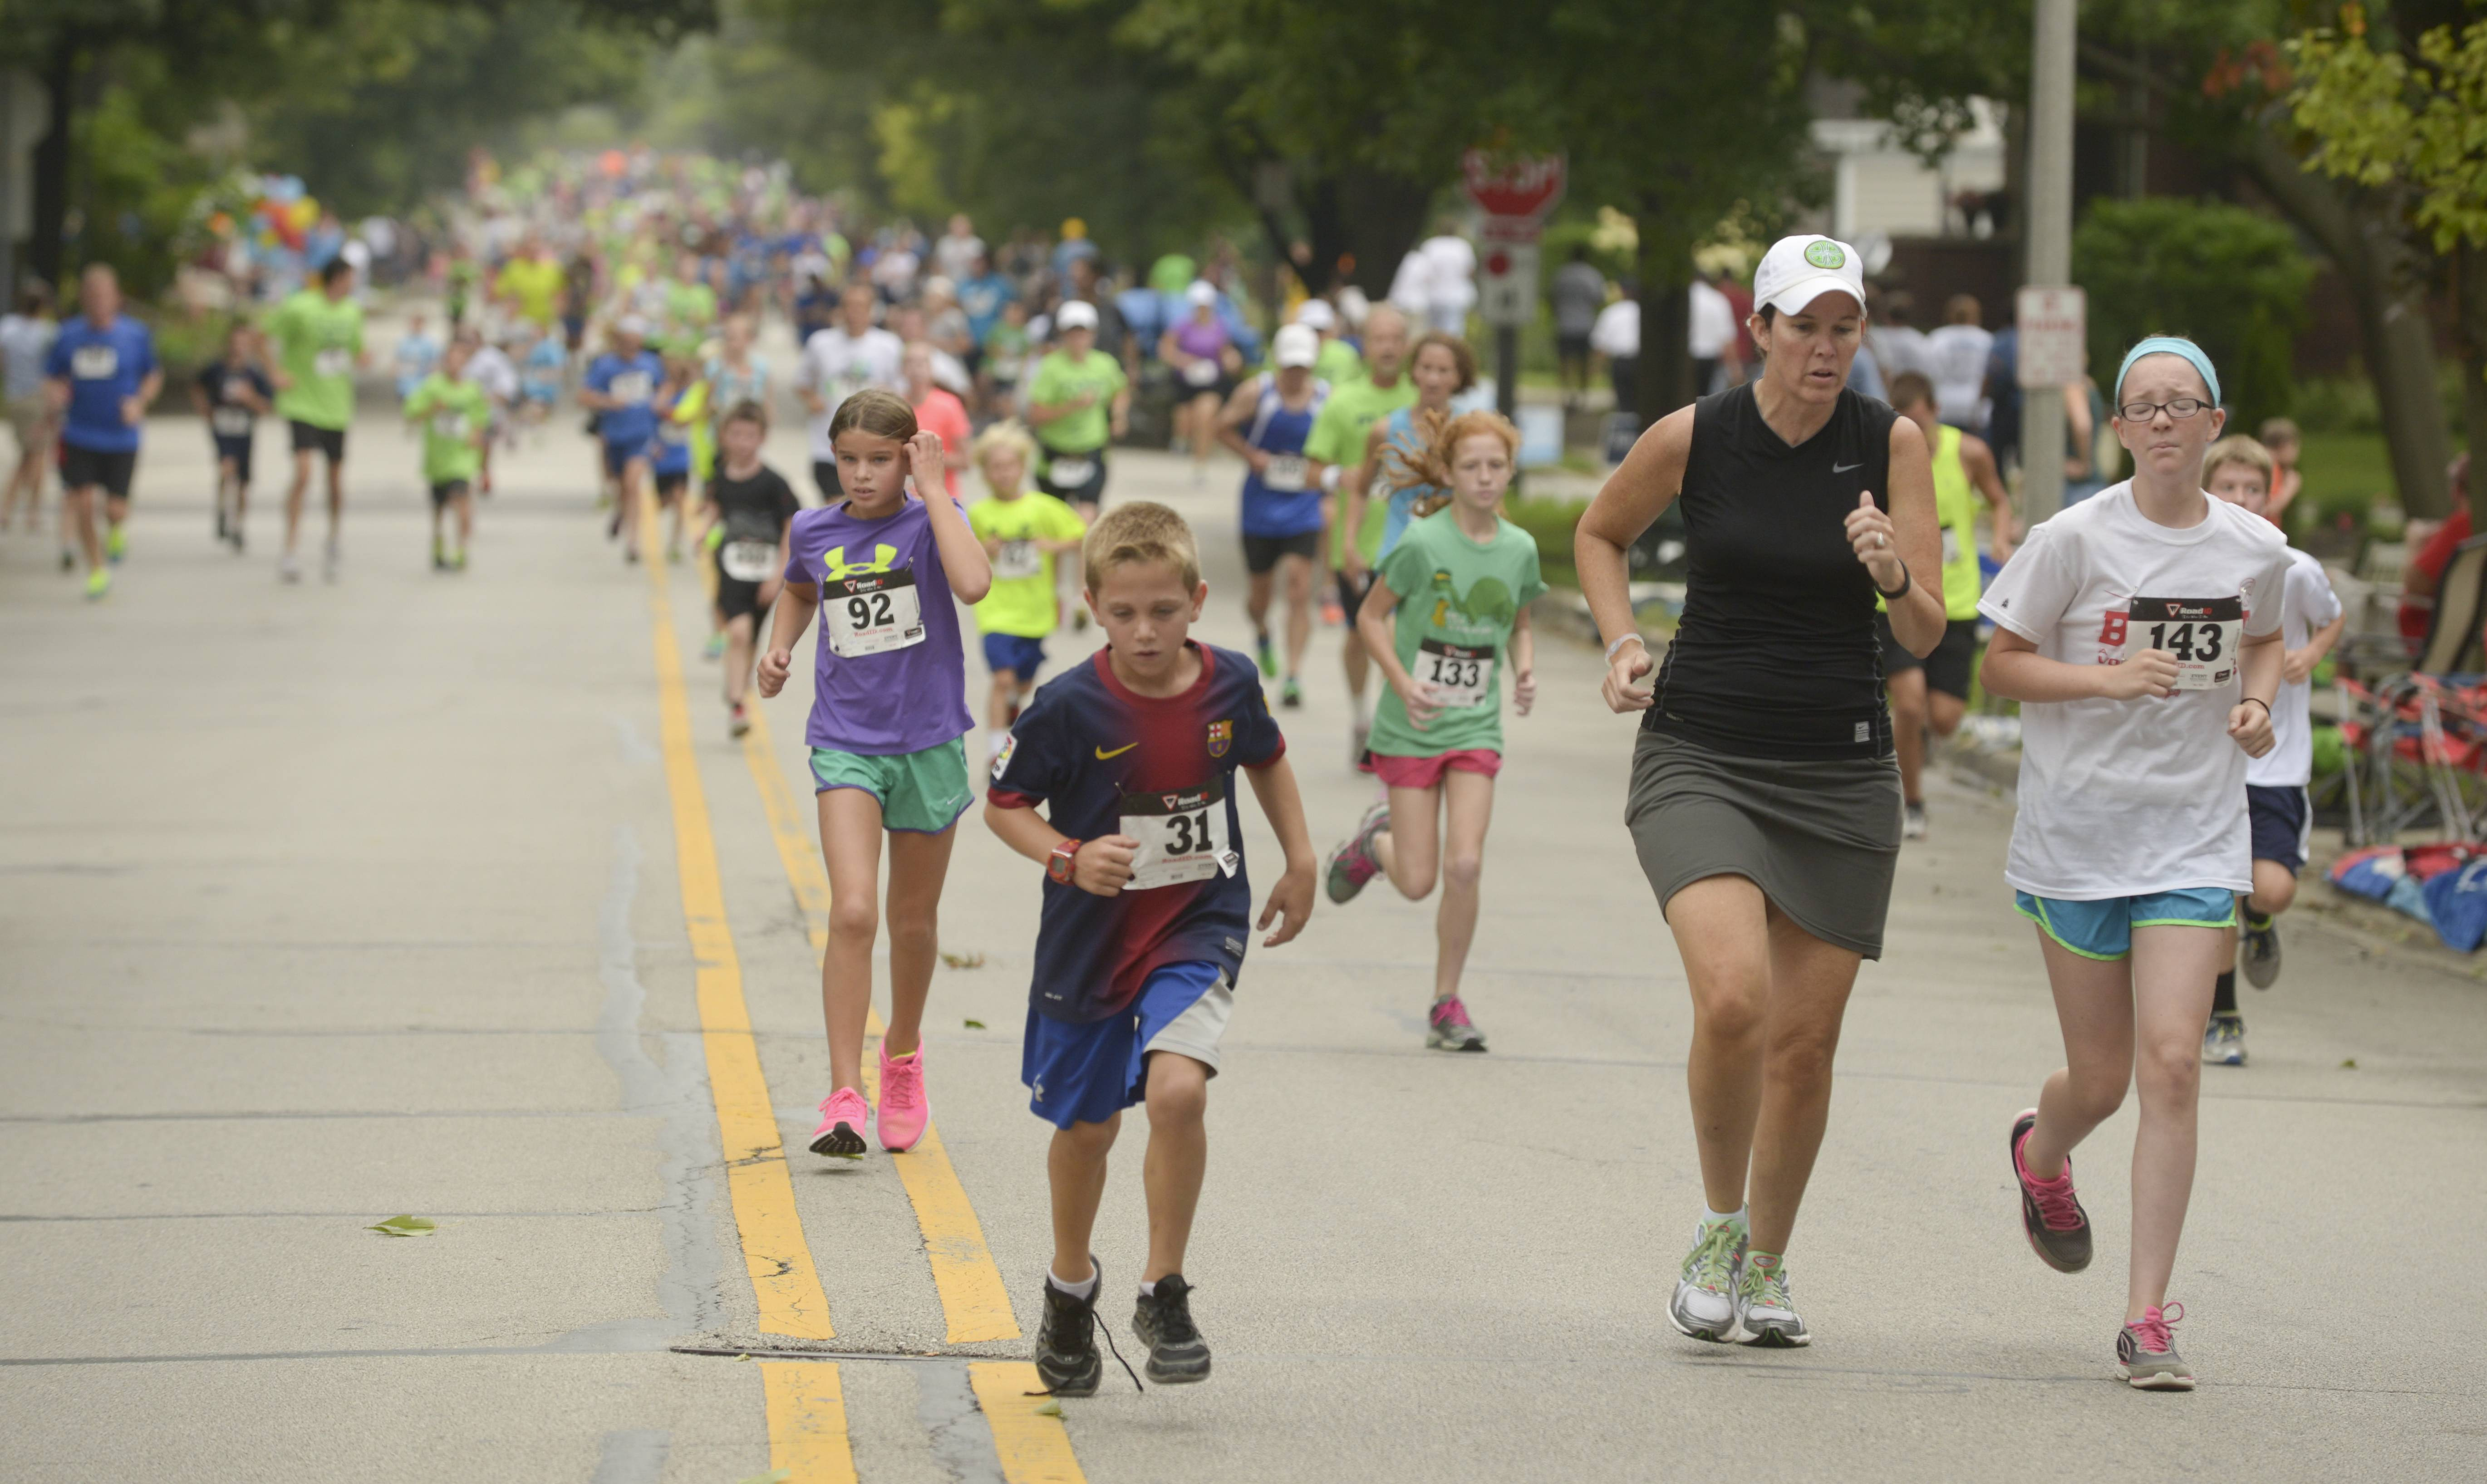 New 5K creates Fling Challenge at Naperville festival